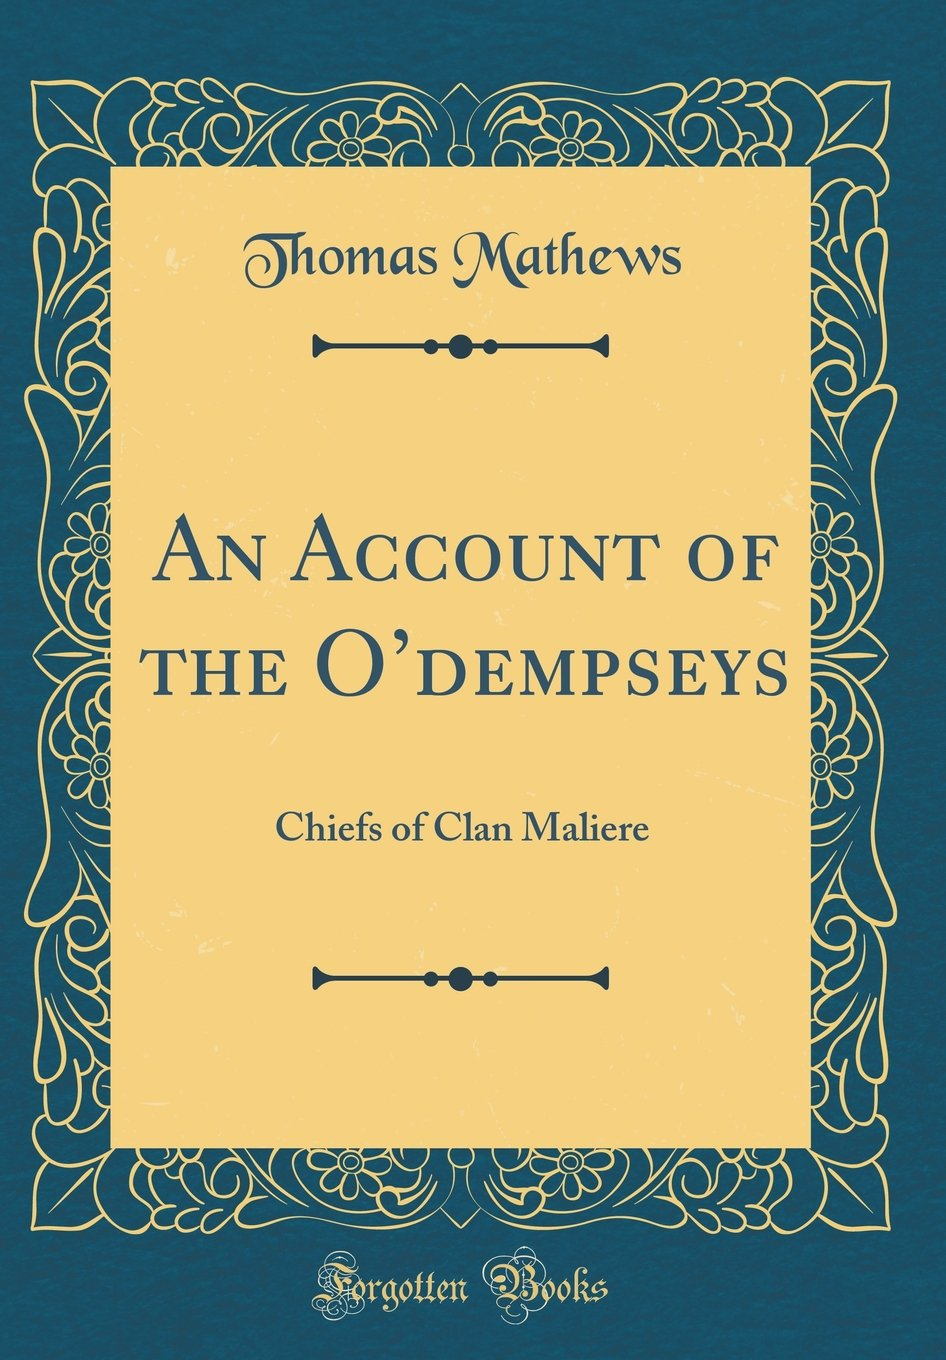 An Account of the O'dempseys: Chiefs of Clan Maliere (Classic Reprint) pdf